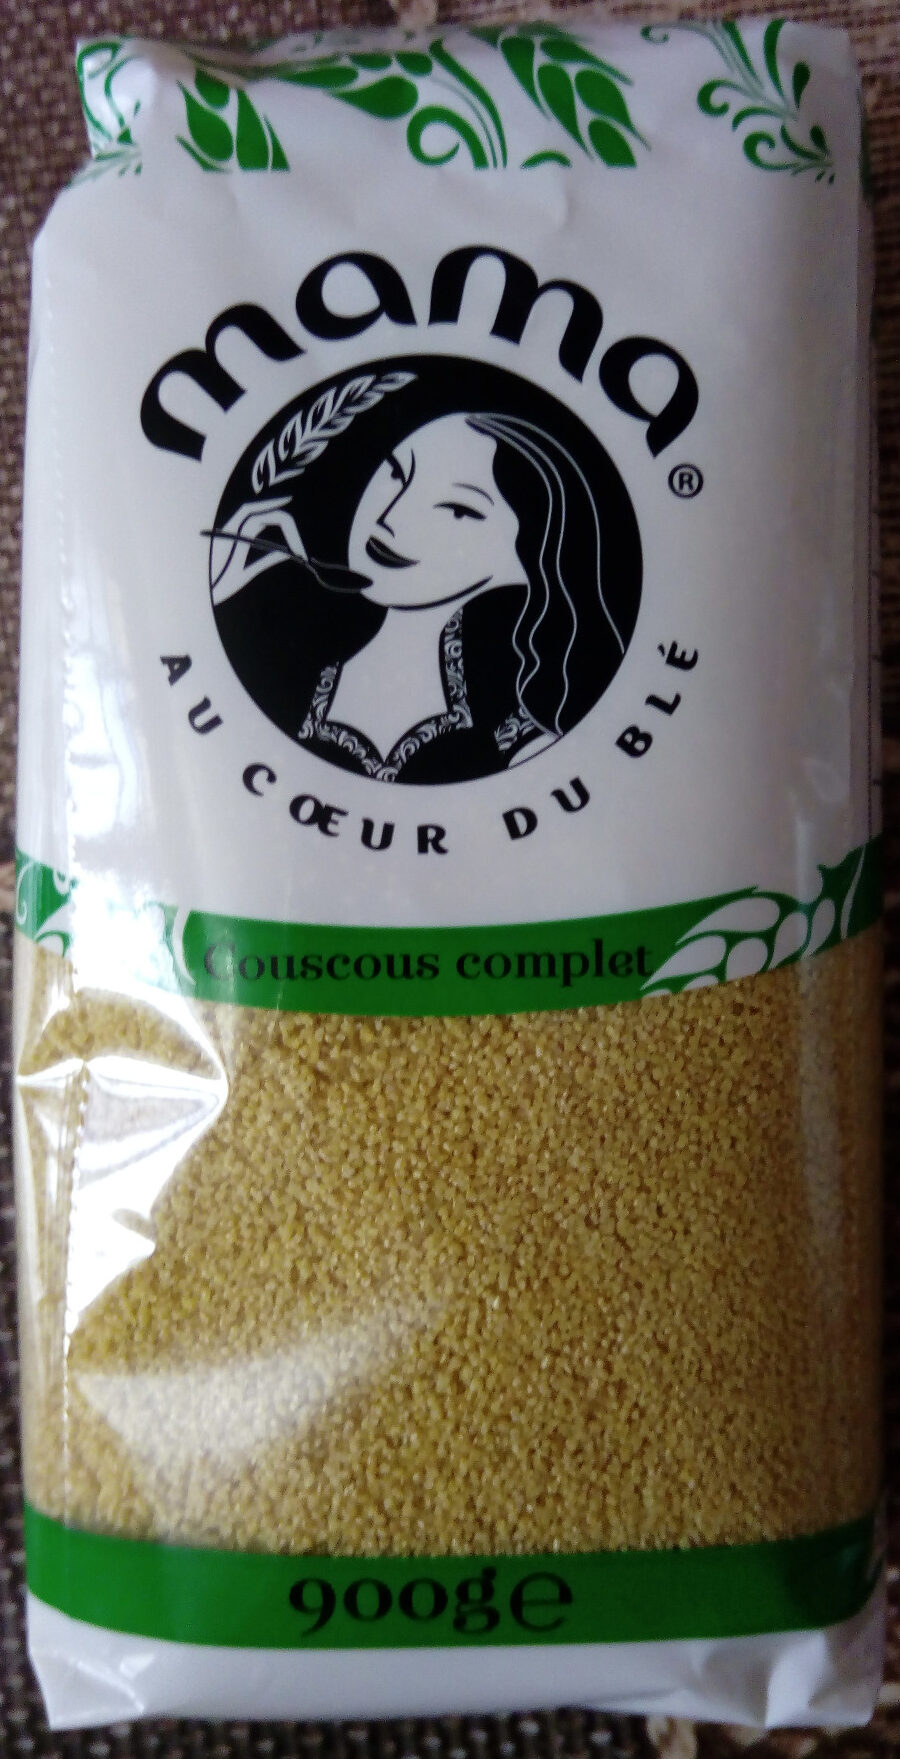 Couscous complet - Product